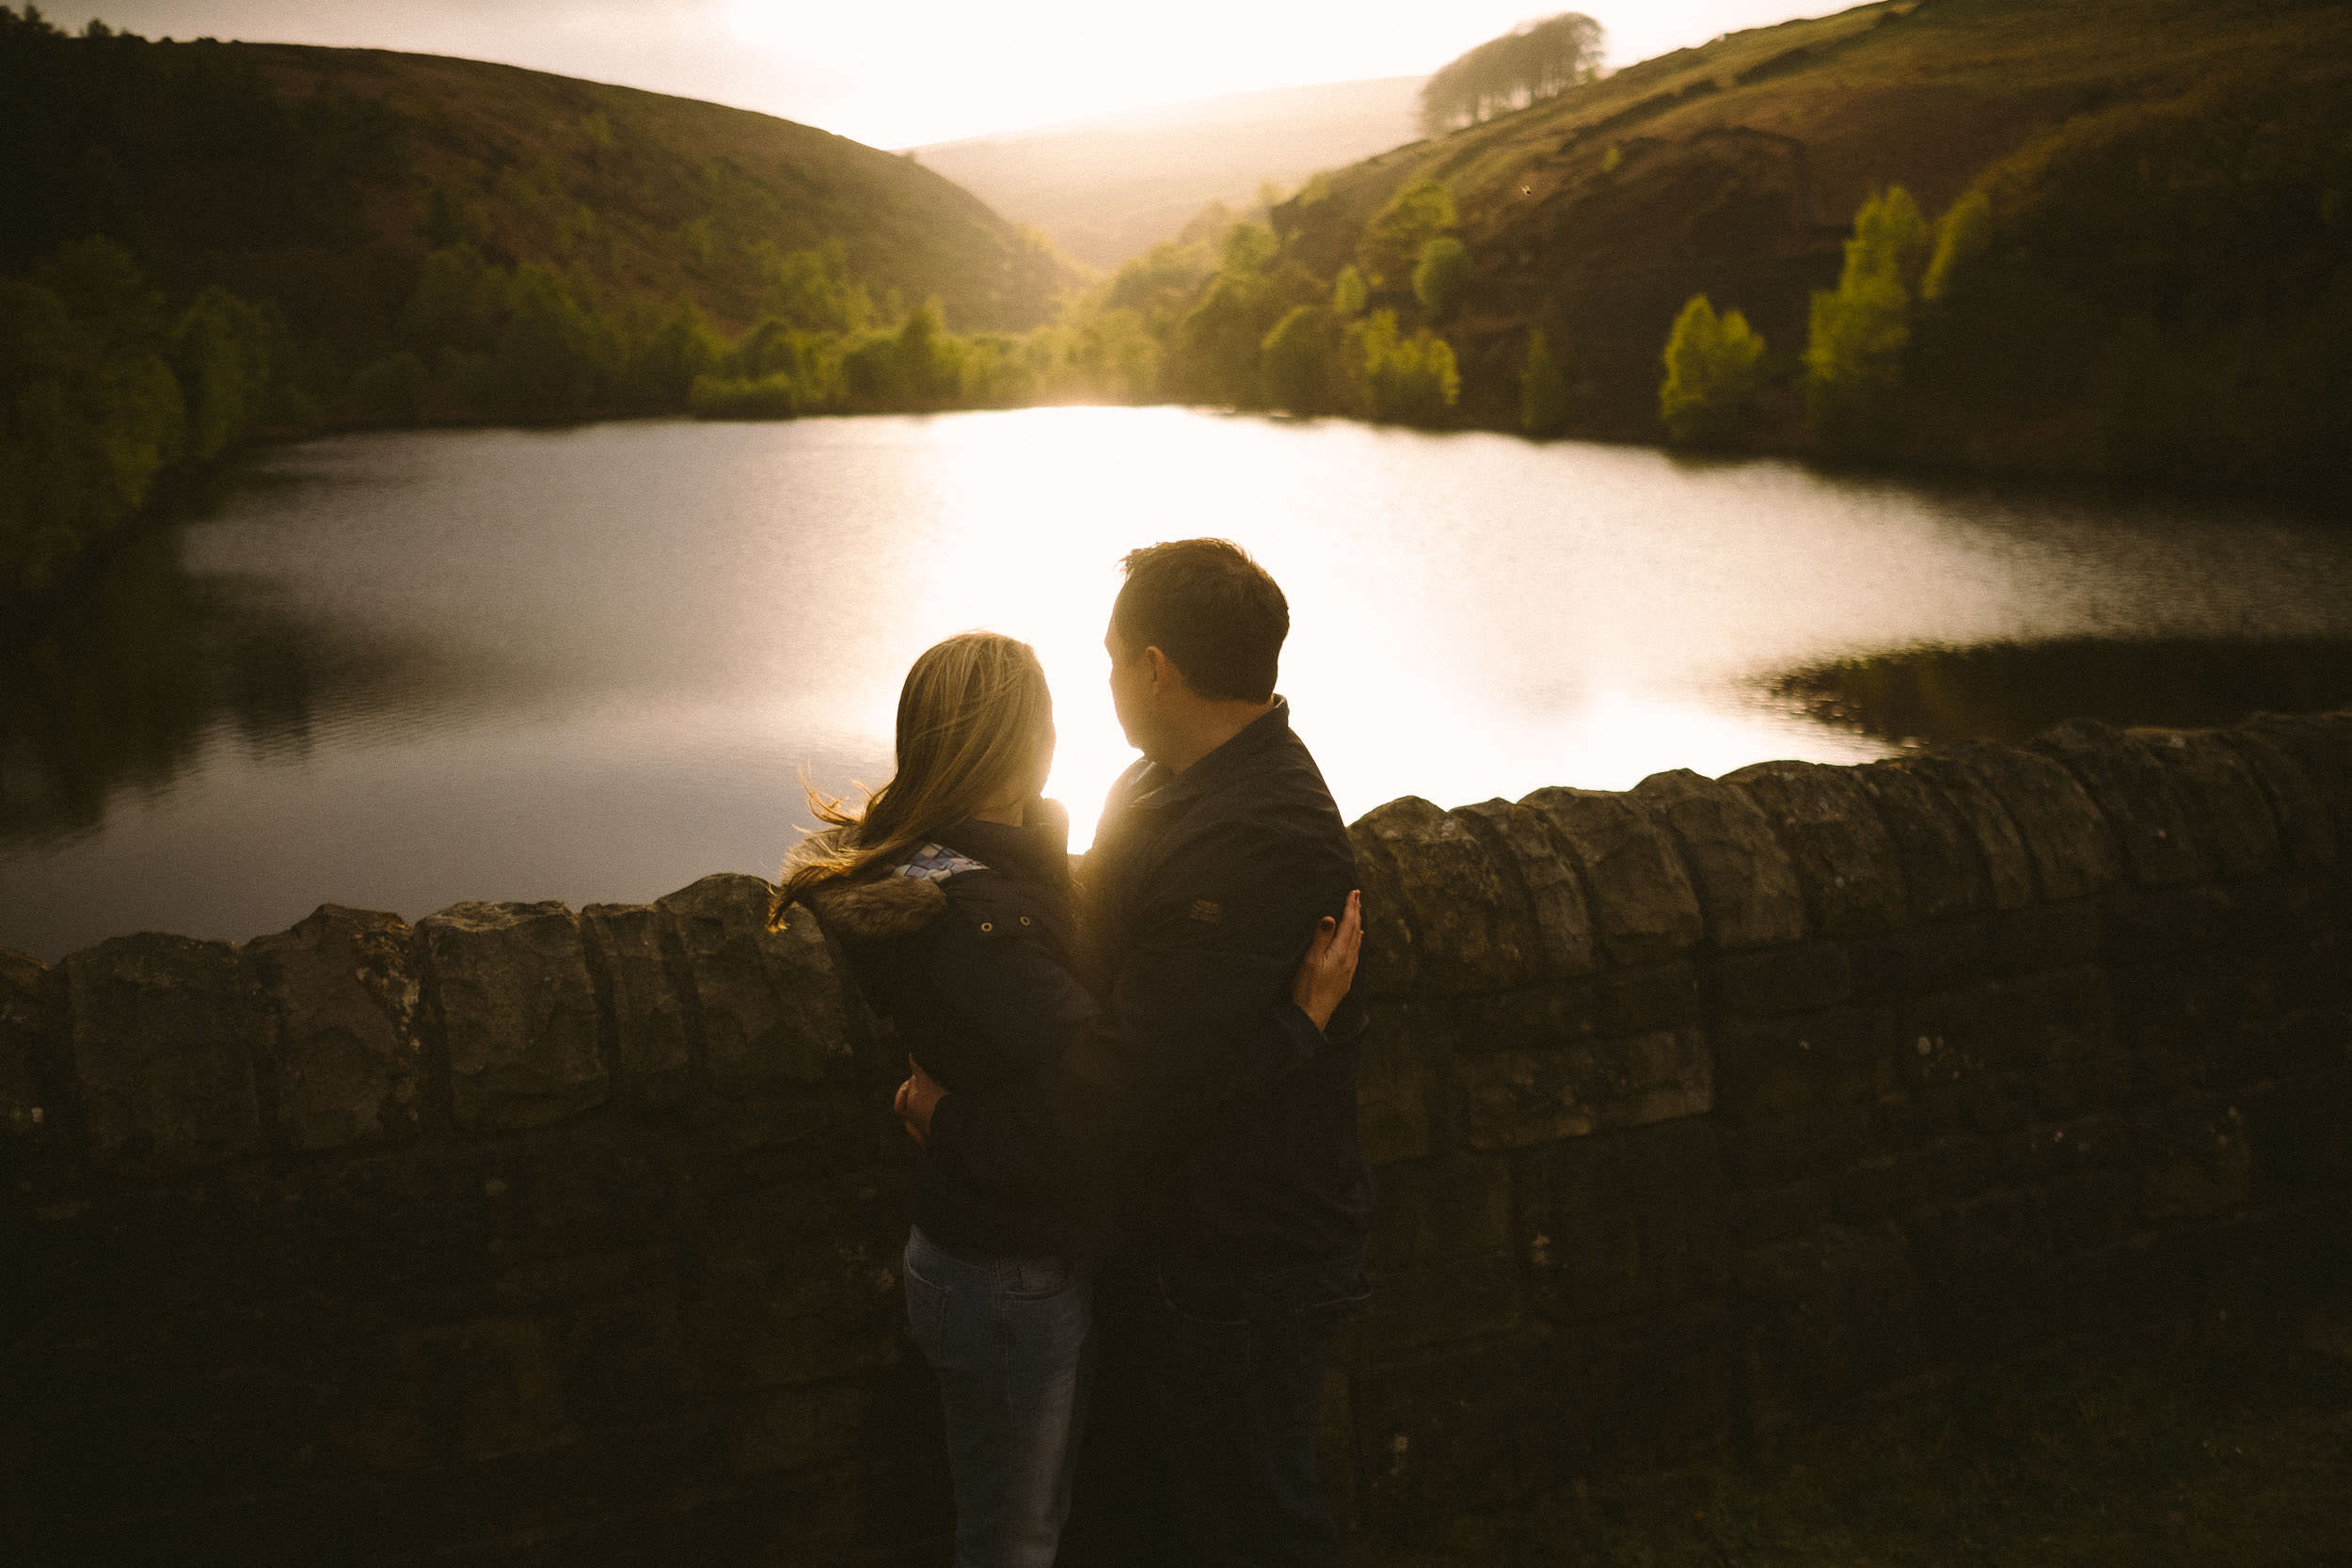 Couple embrace and look out over Digley reservoir as the sun shines off the water